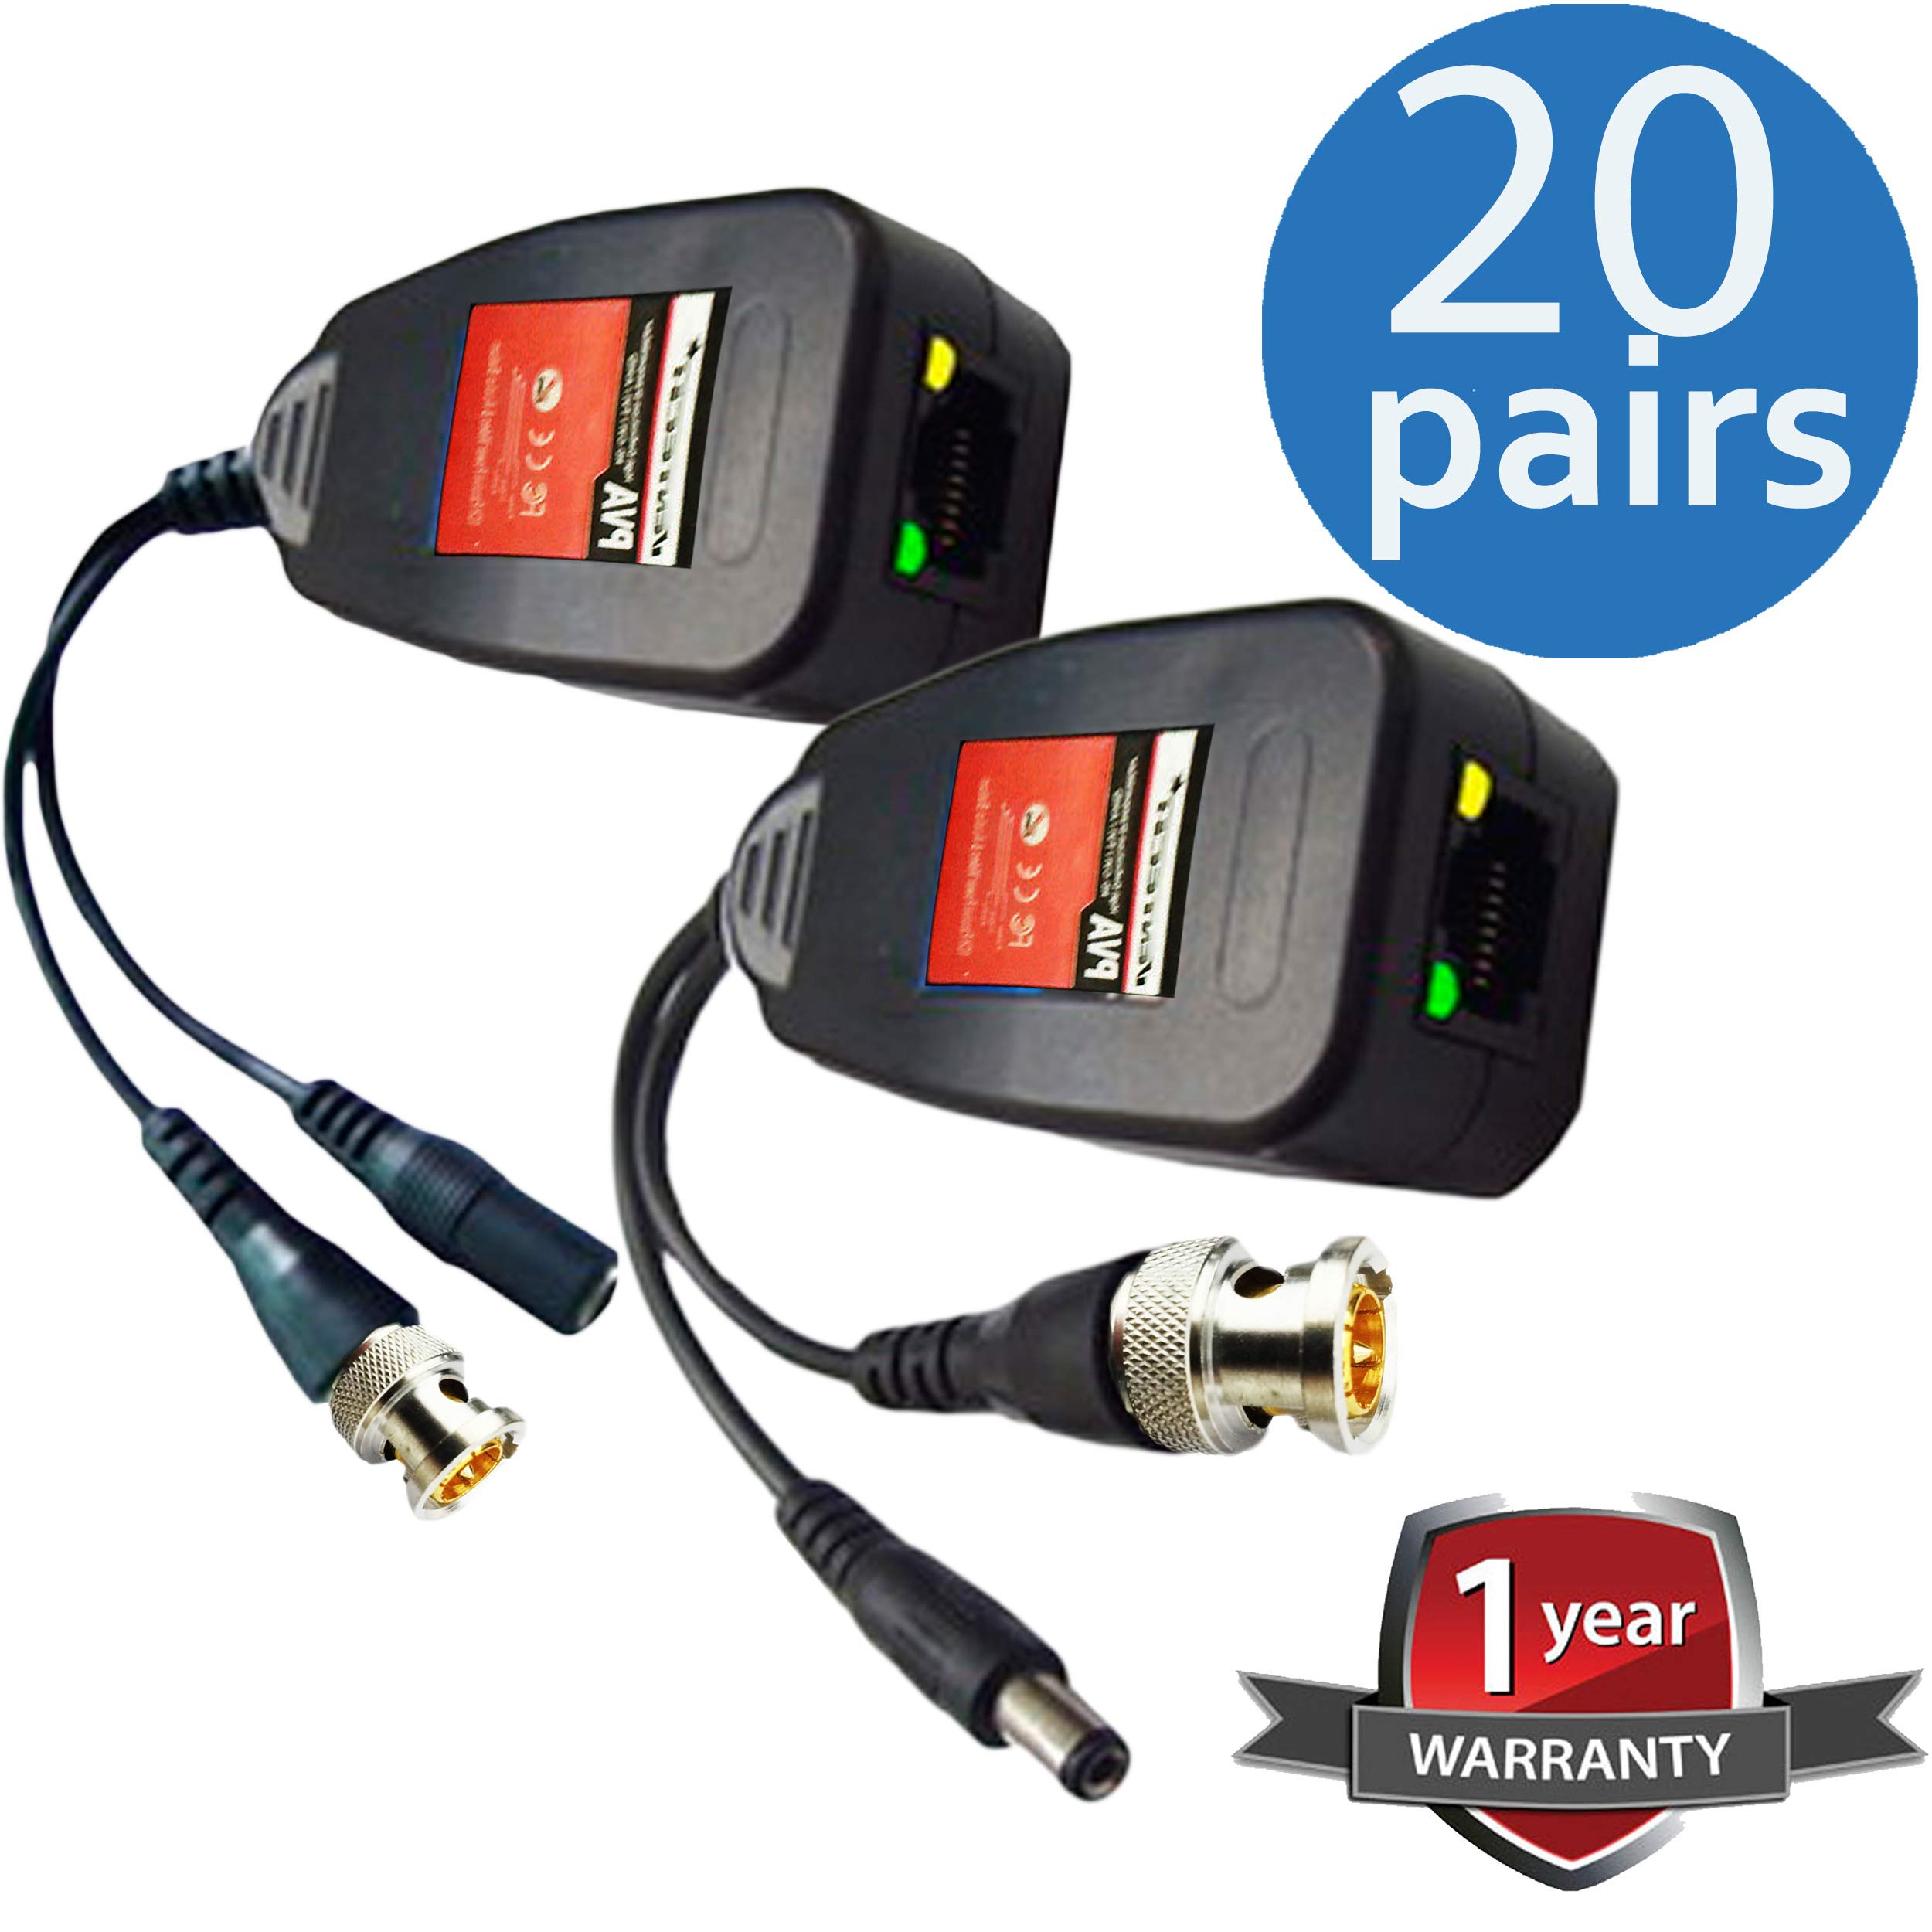 UTP balun hd Ventech cat5 to bnc Video baluns transceiver Passive with Power Connector Compatible with All CCTV Technologies(Analog AHD TVI CVI ntsc pal) 20 Pairs rj45 75 OHN connectors by VENTECH